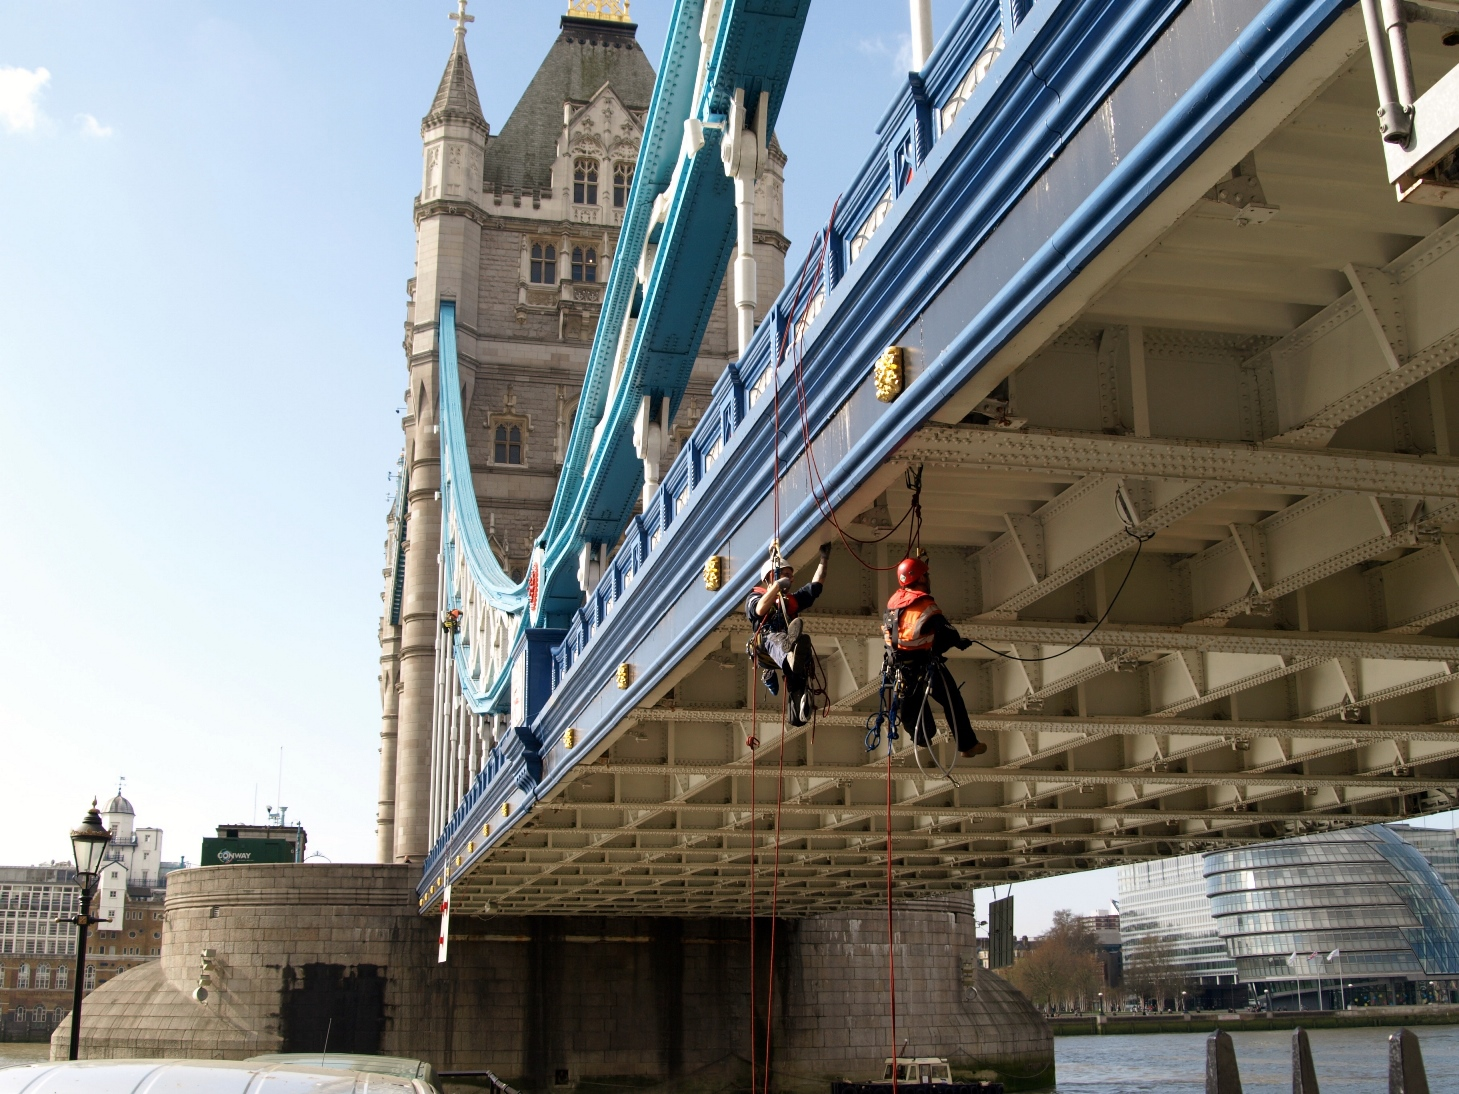 Littlewood and How perform safety checks on the iconic Tower Bridge structure in London